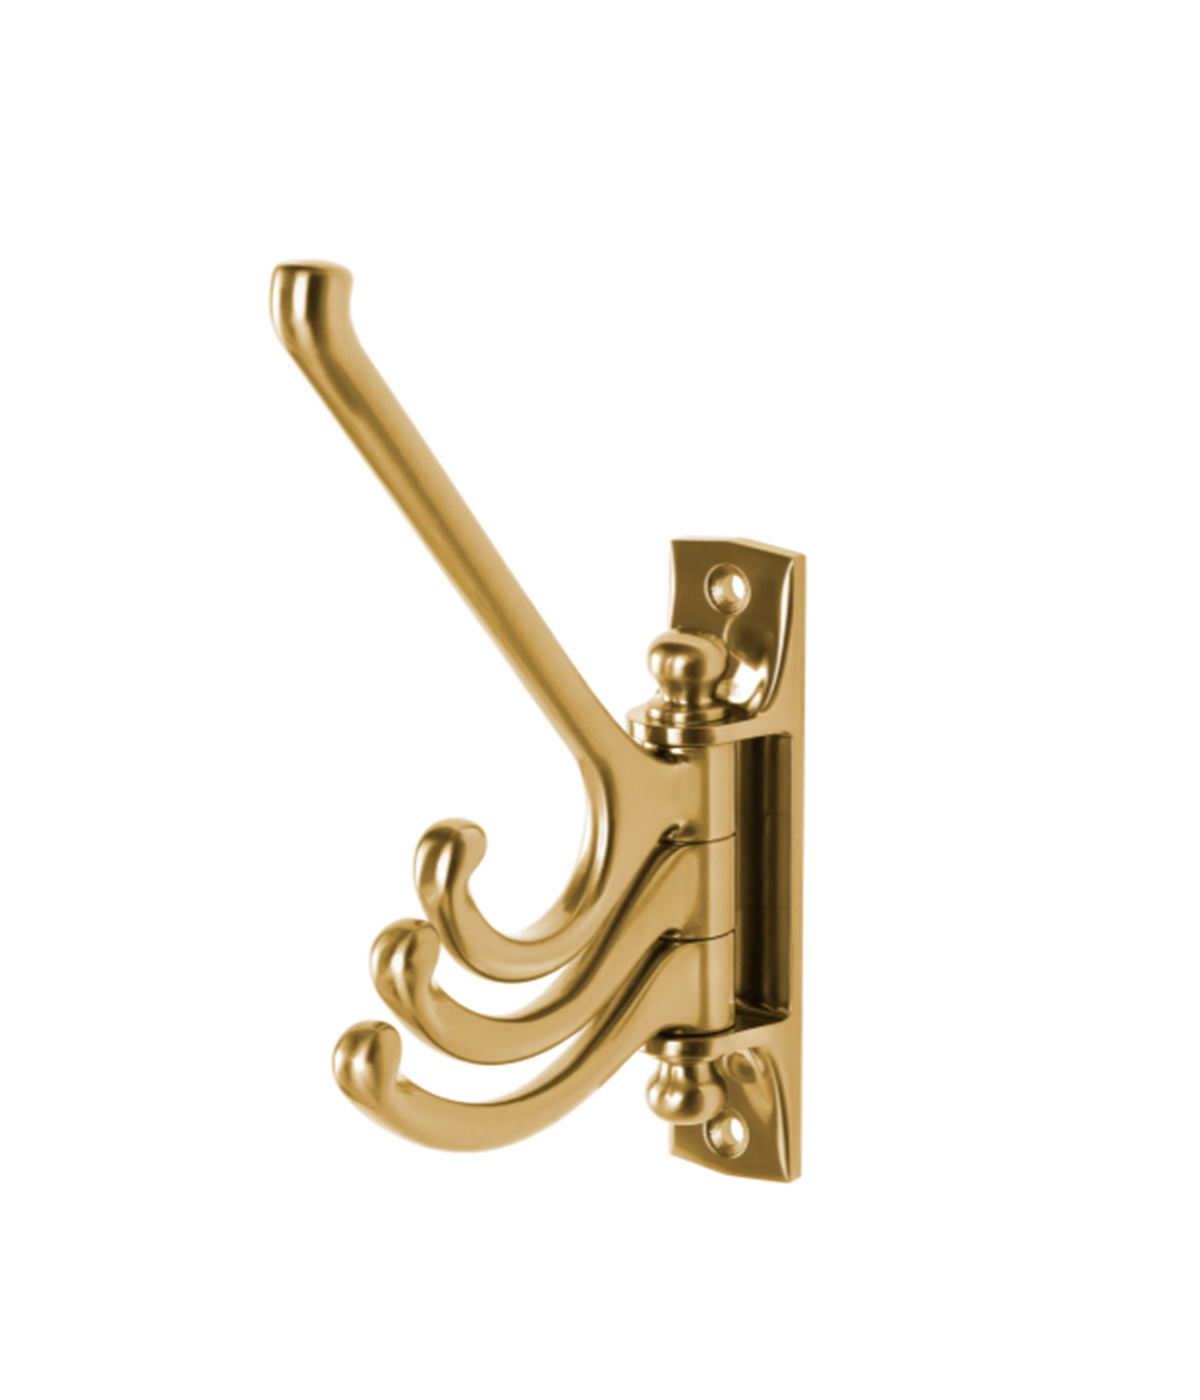 Bathroom organizers, gold swivel hooks